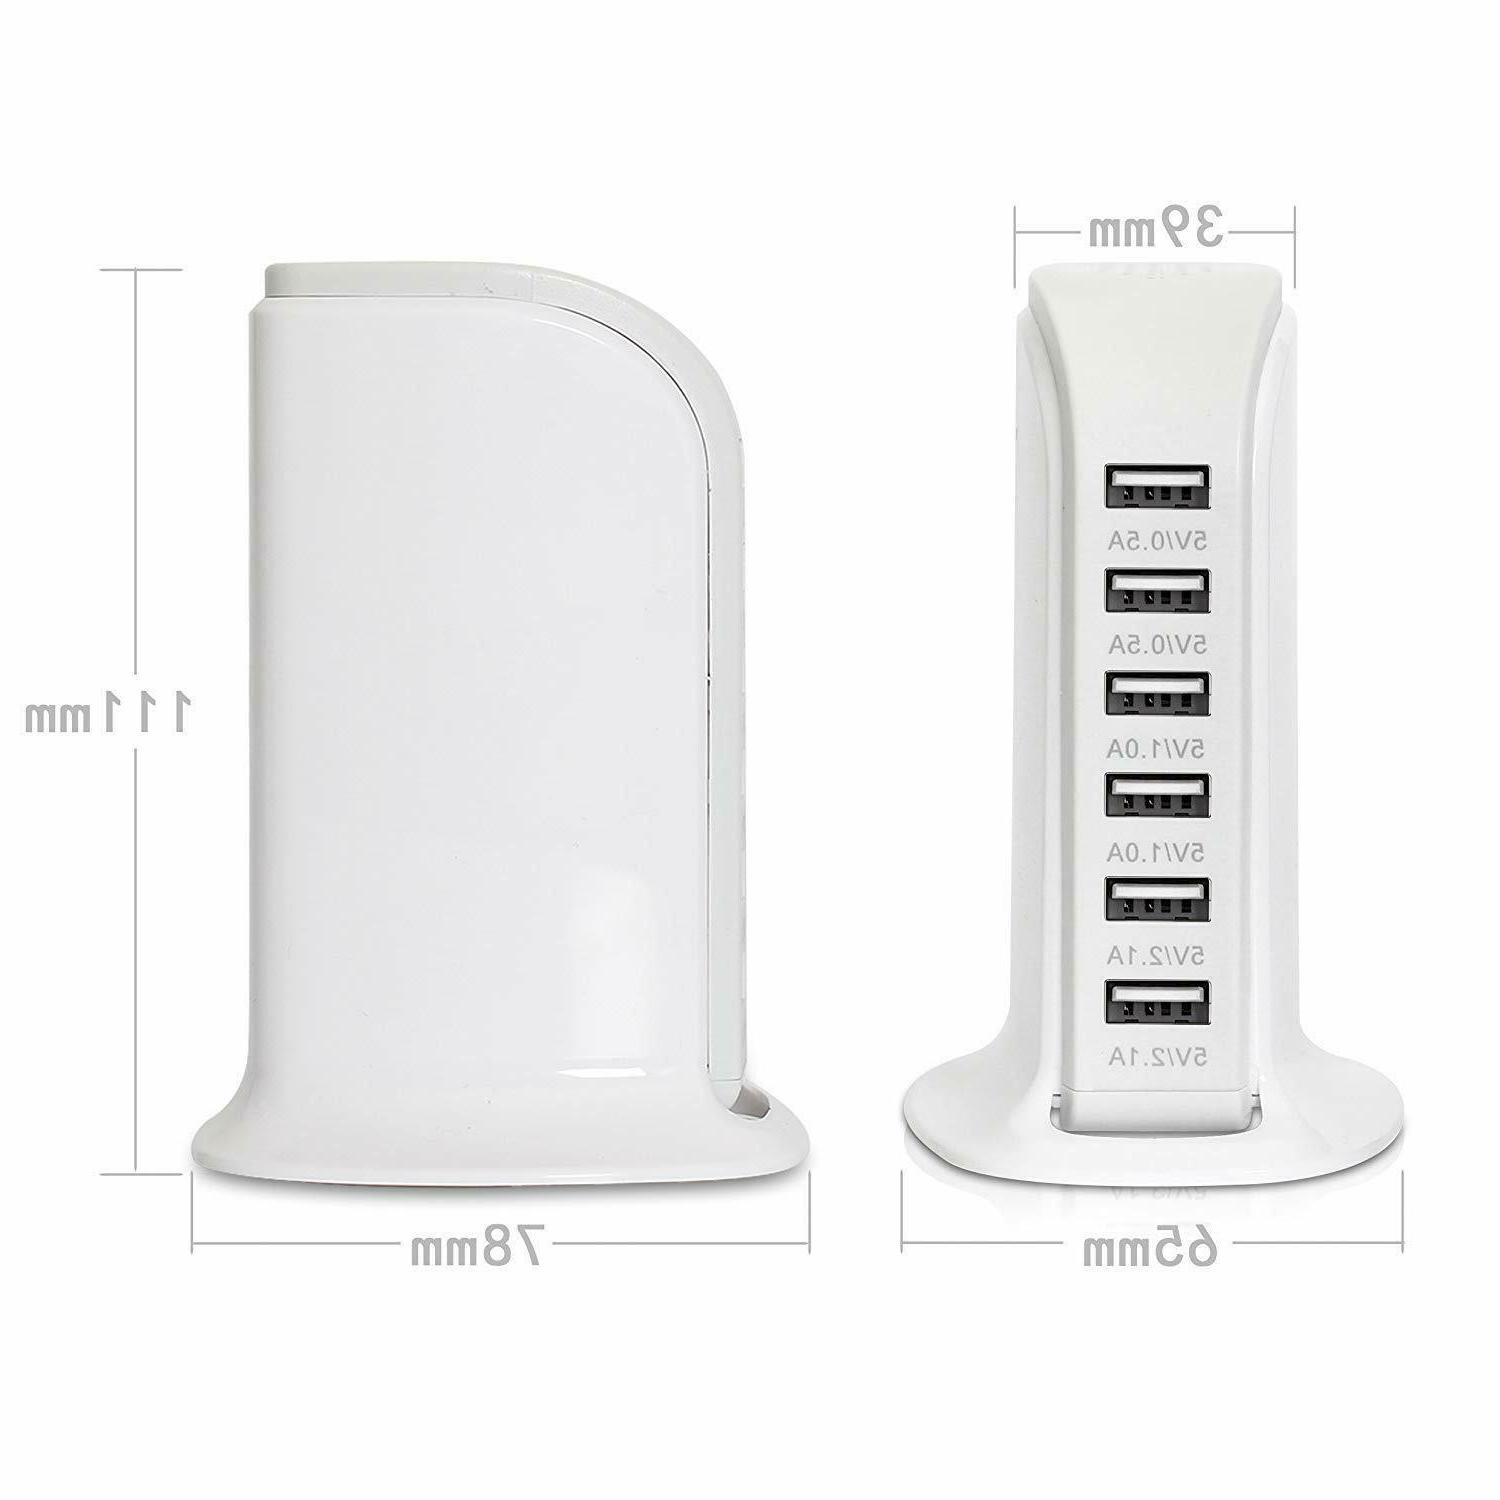 2 Pack of 6 Dock Tower Hub Rapid Station US